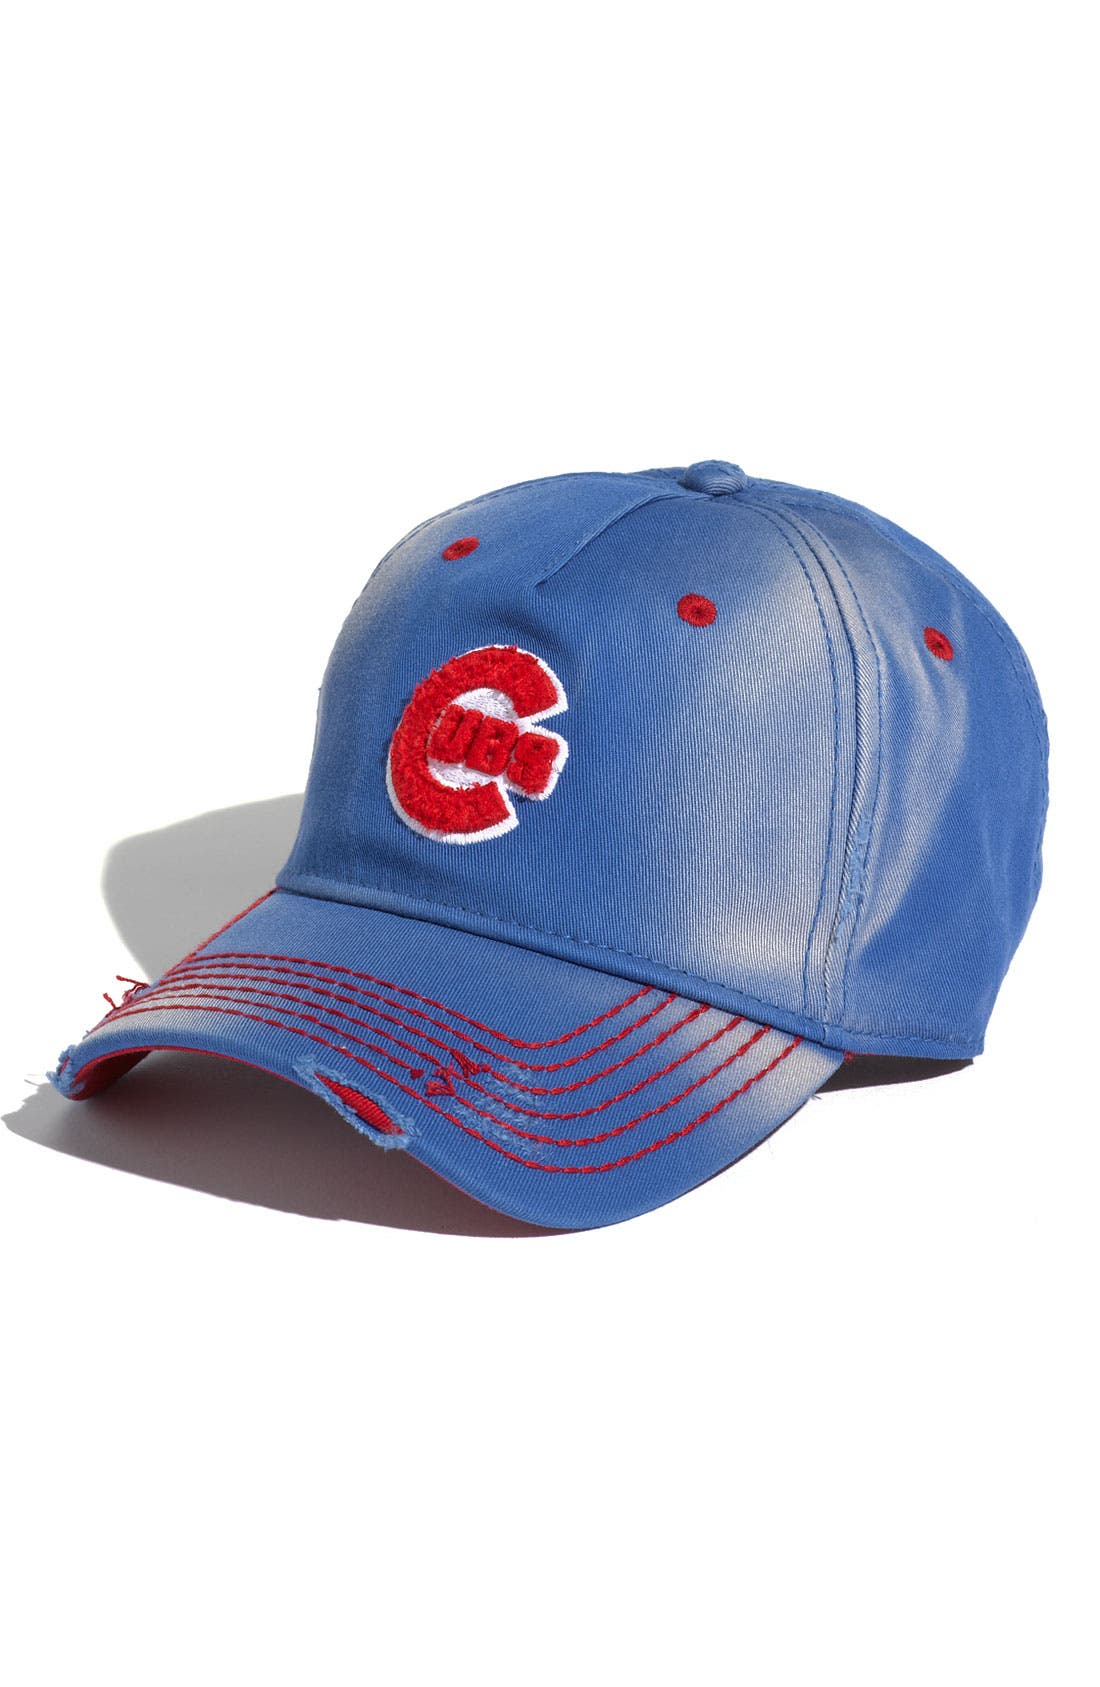 Alternate Image 1 Selected - American Needle 'Chicago Cubs' Distressed Cap